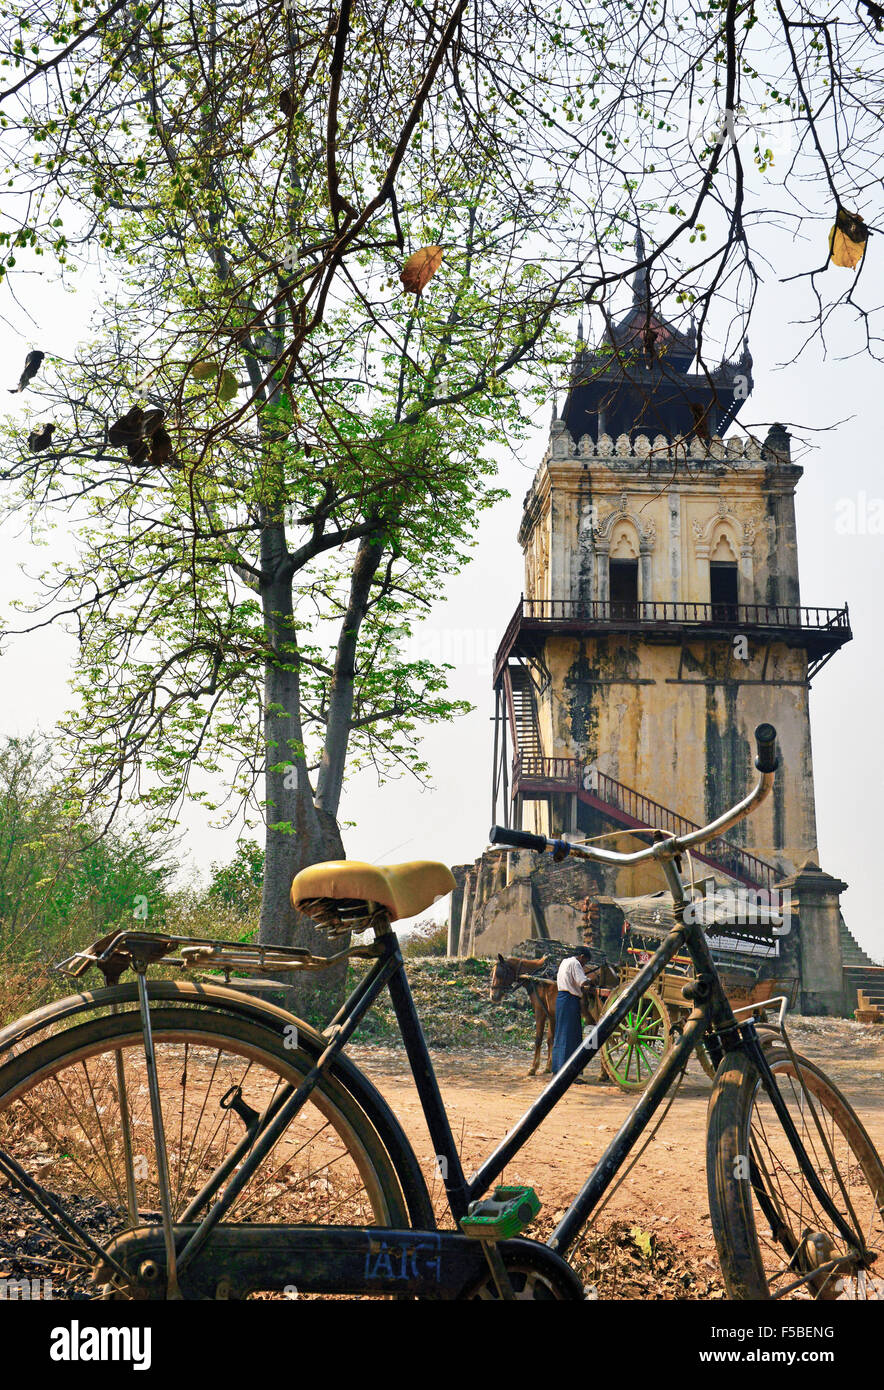 Nan Myint Watch Tower 90ft(30m)high-tourists stop see the only masonry building left on the King Bagyidaw's Palace - Stock Image